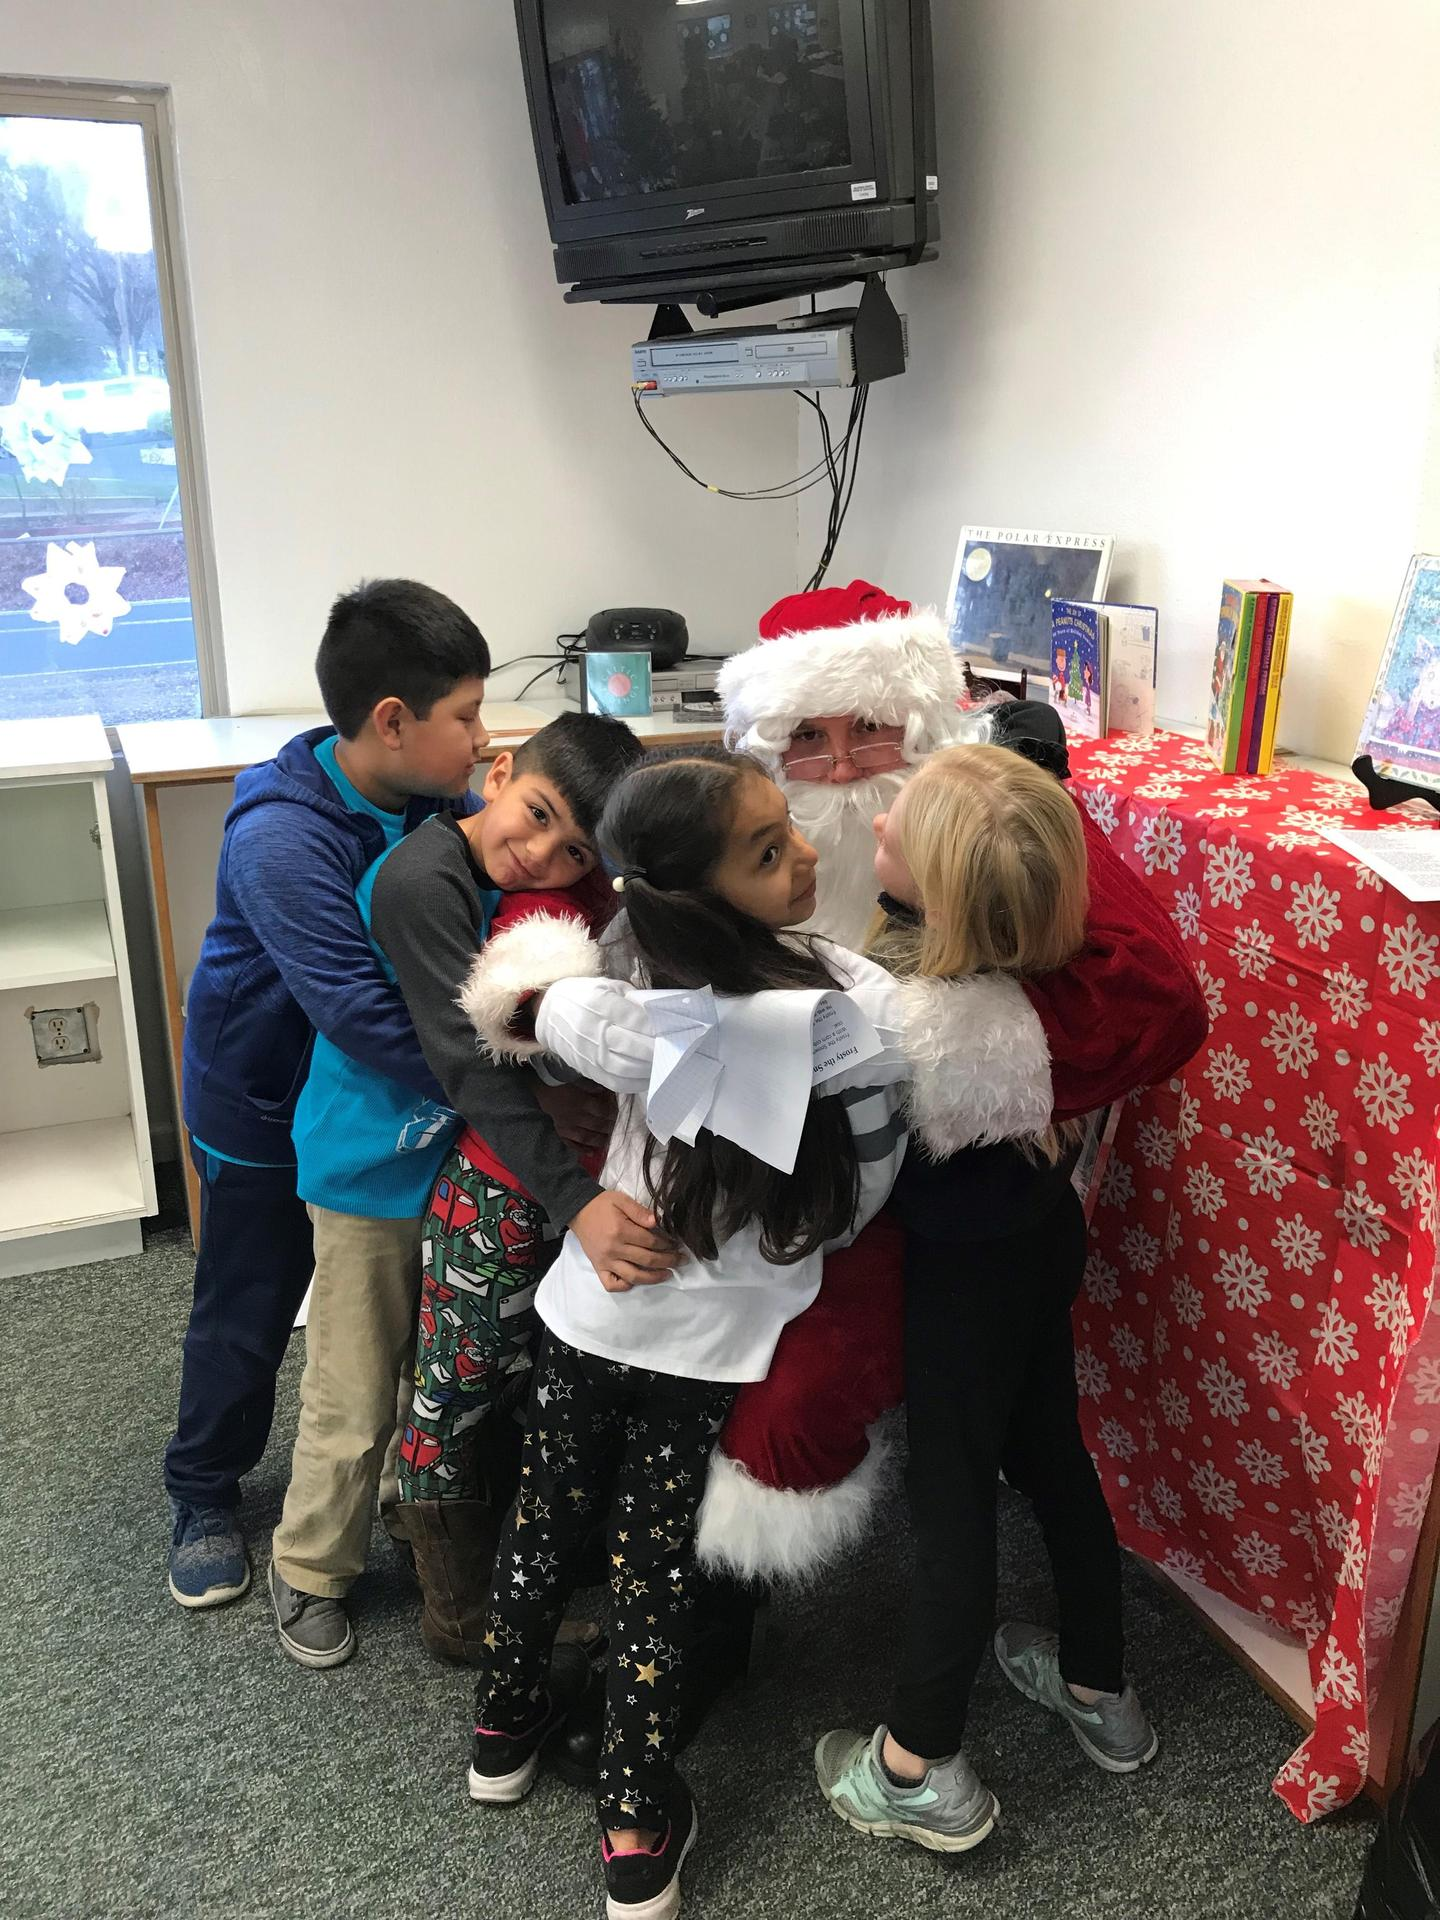 Big hug for santa at michelson 2018